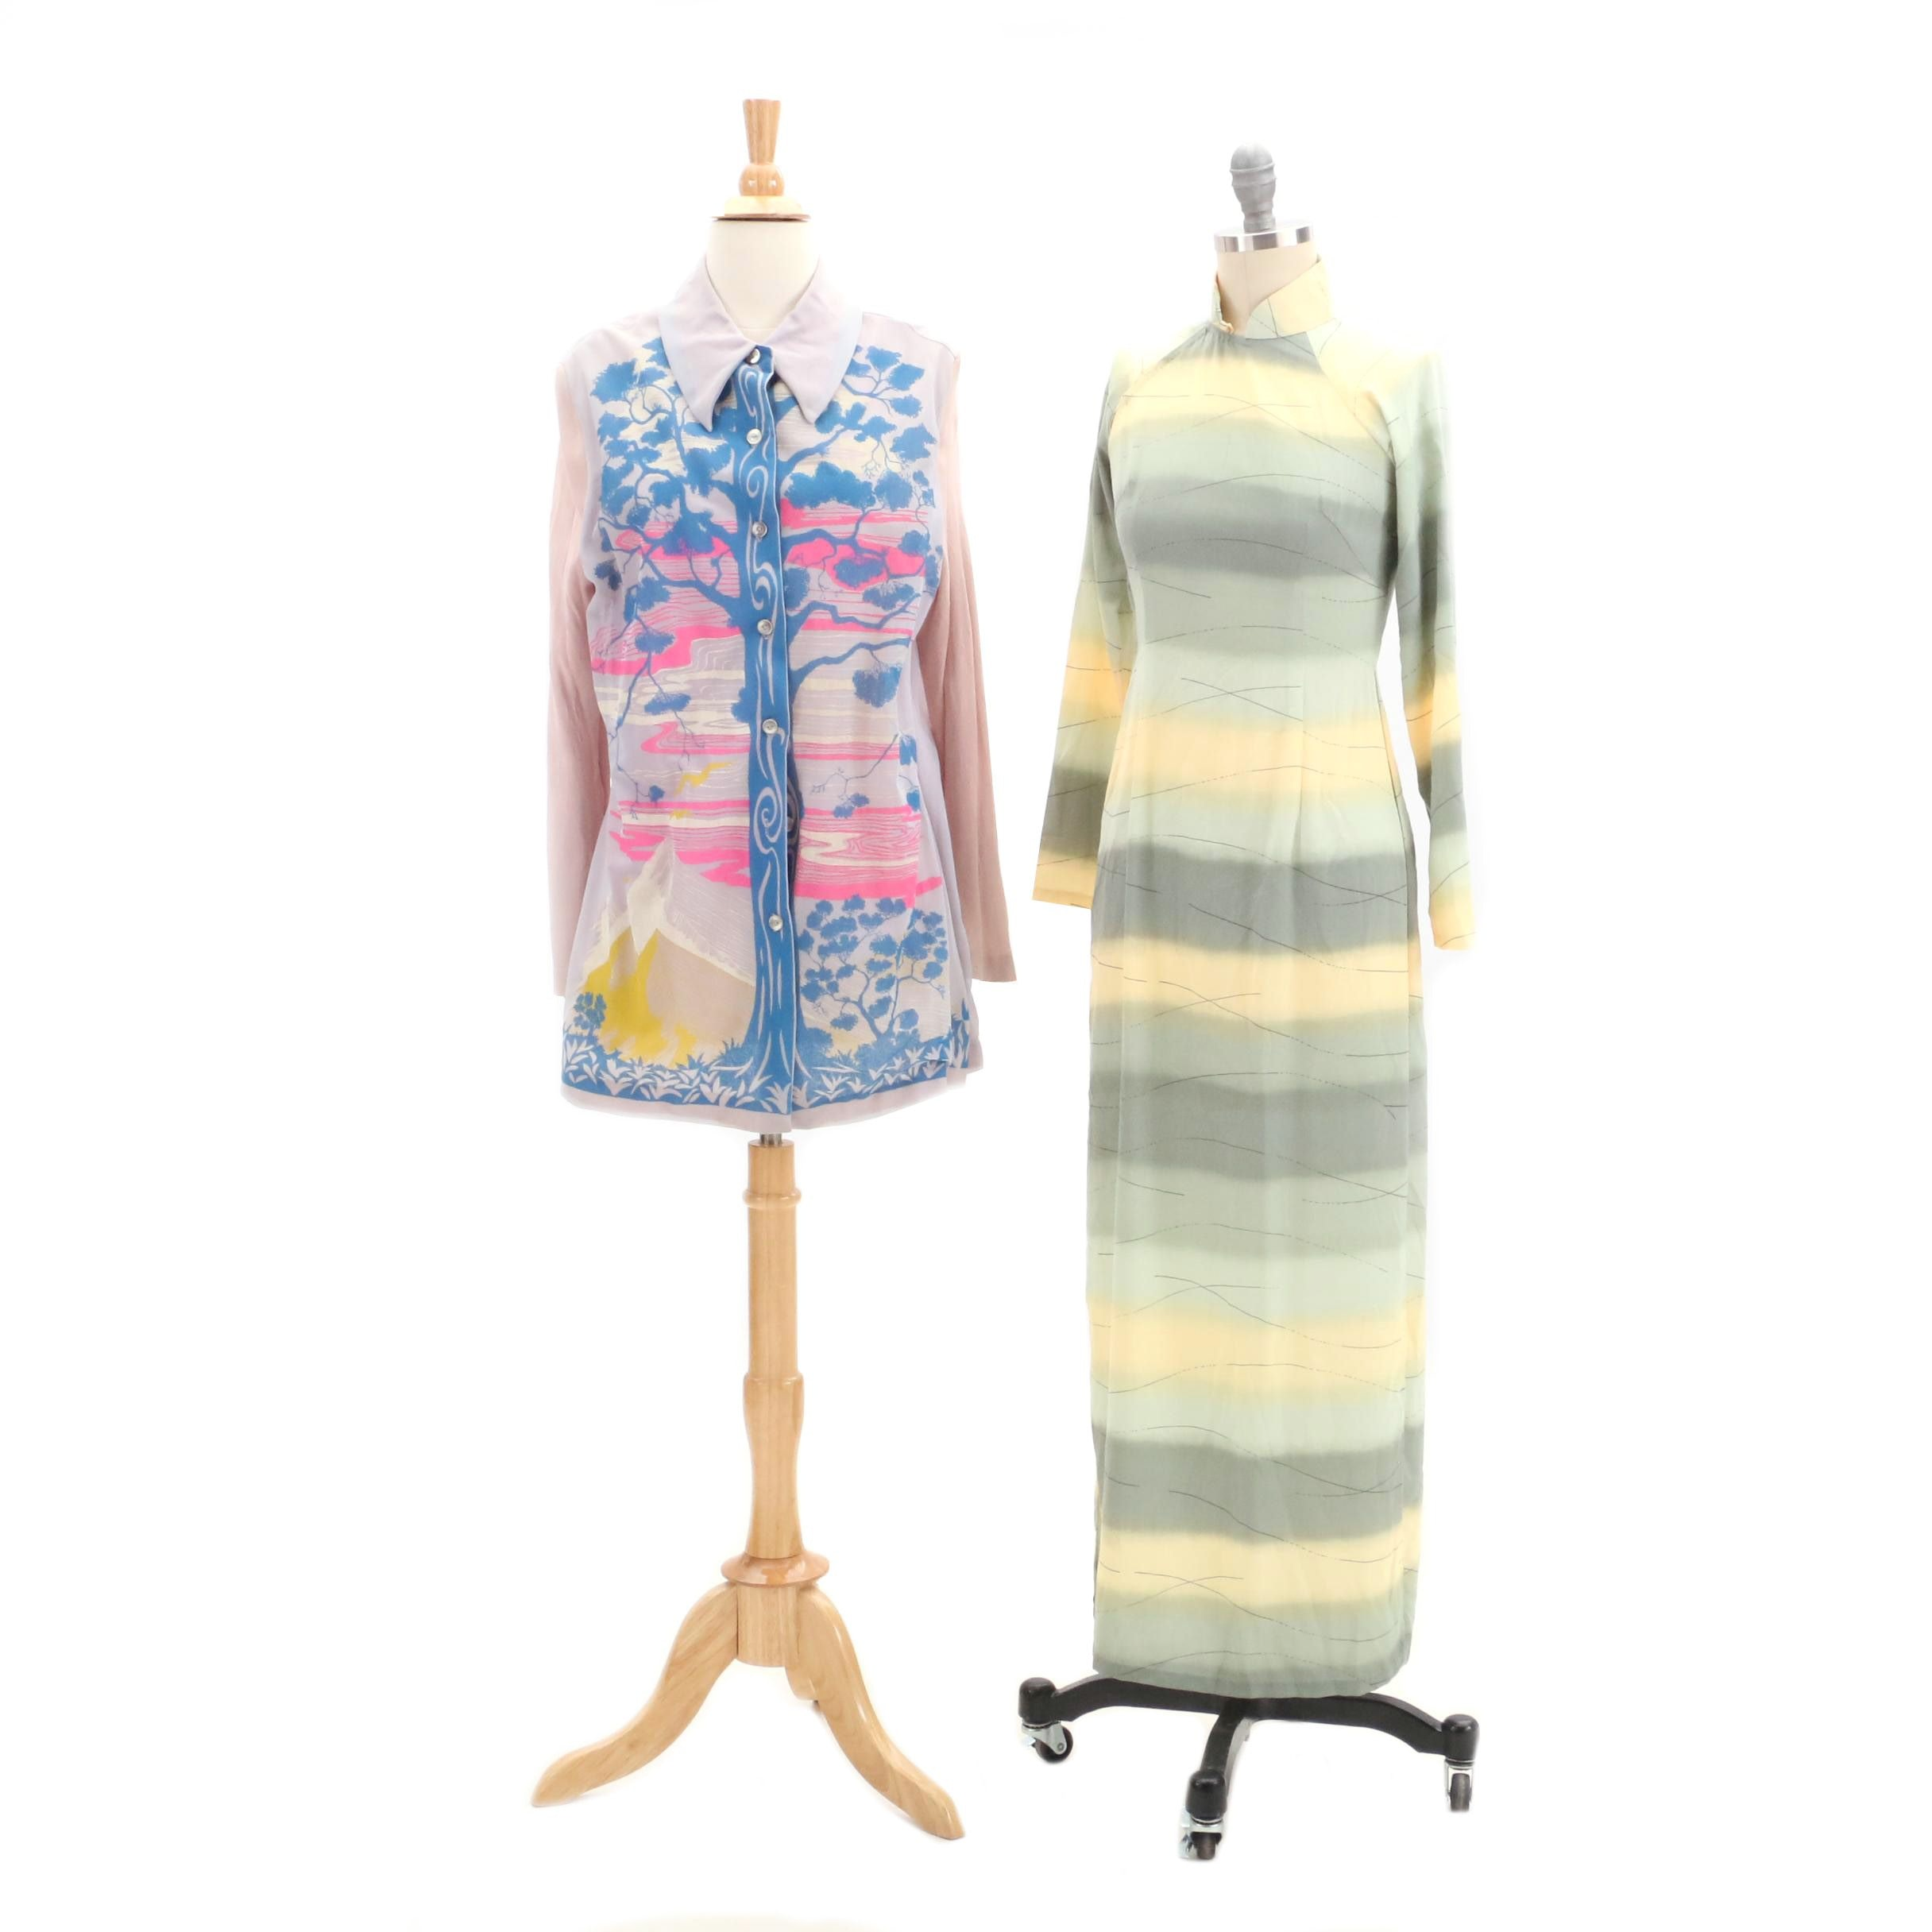 Circa 1960s Asian Inspired Long Sleeve Shirt and Cheongsam-Style Tunic Dress